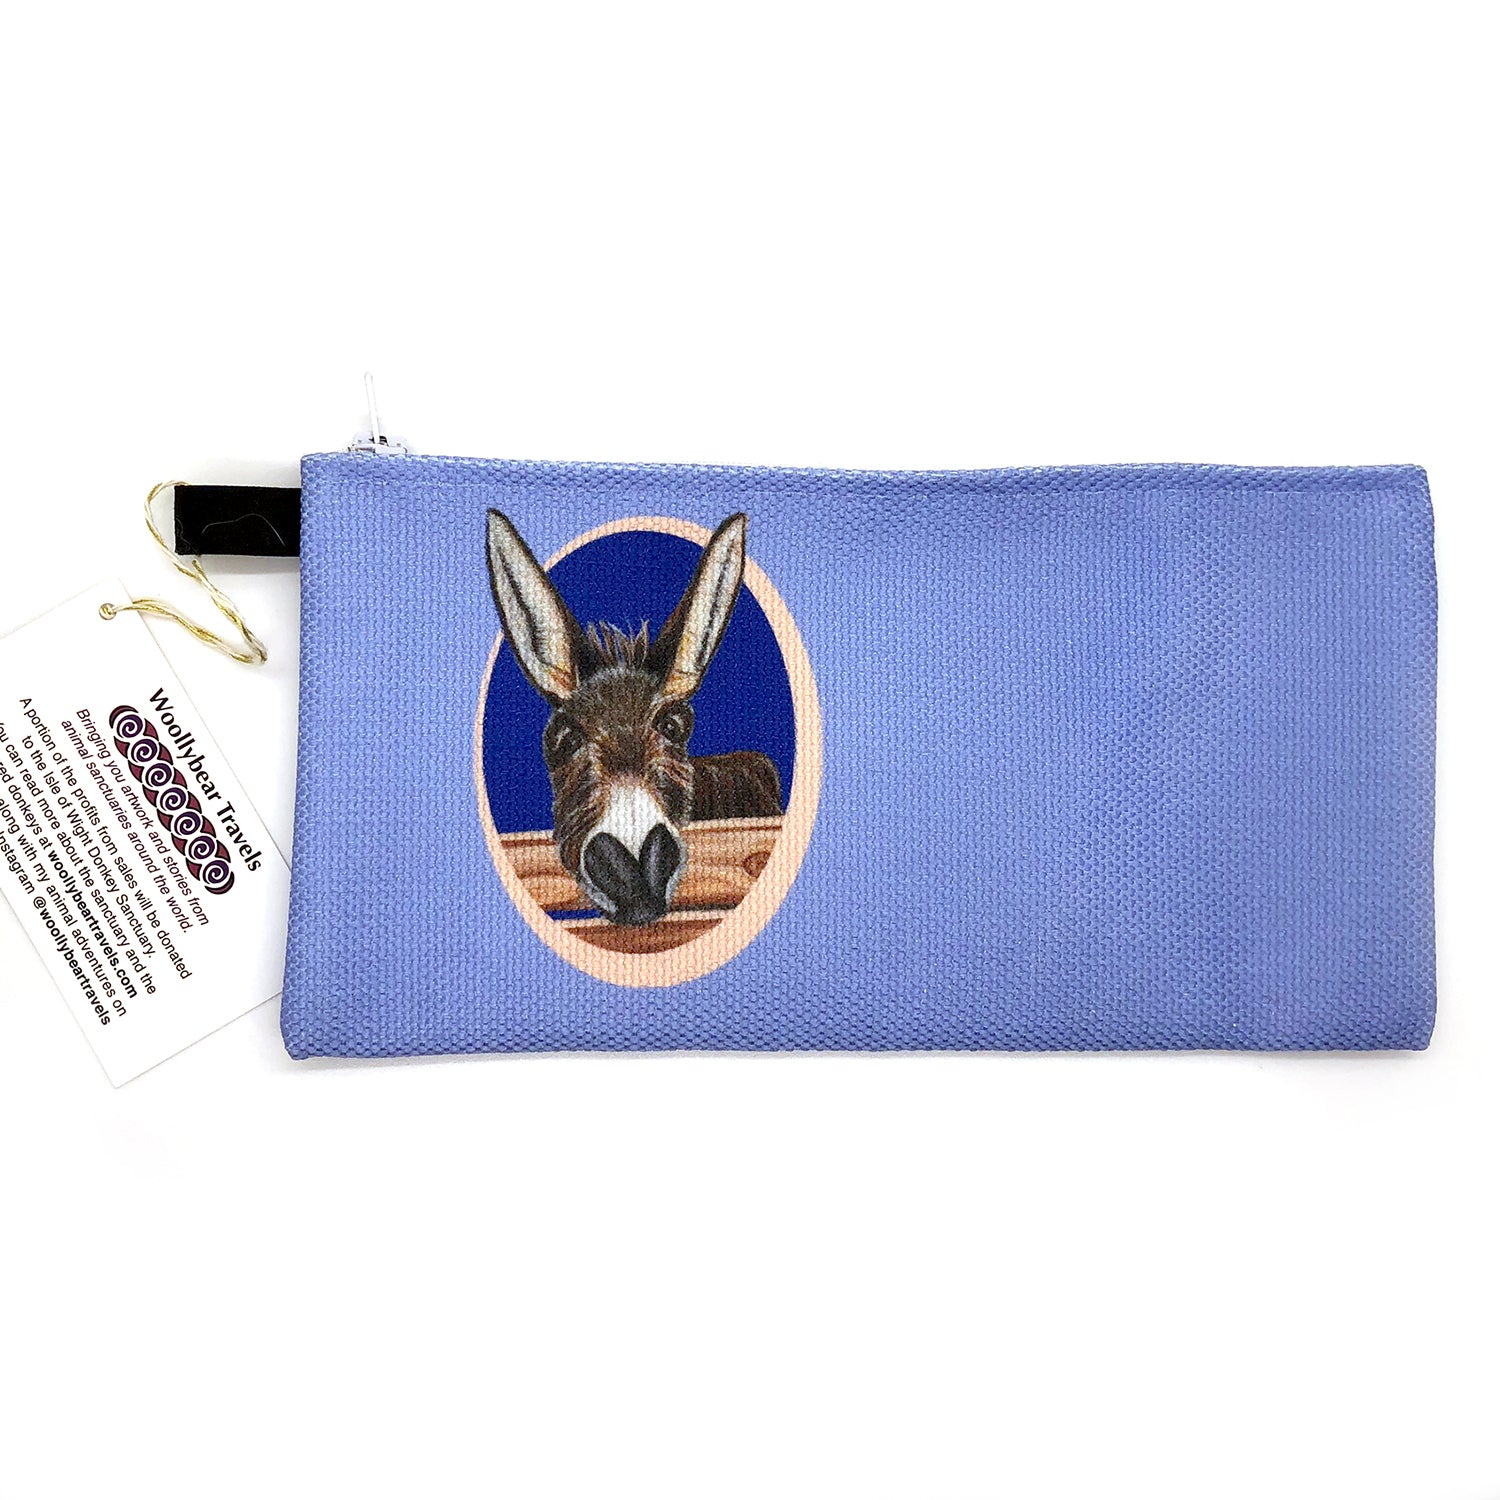 donkey zipper pouch- blue background. Jimbob is a donkey that lives at the Isle of Wight Donkey Sanctuary in England